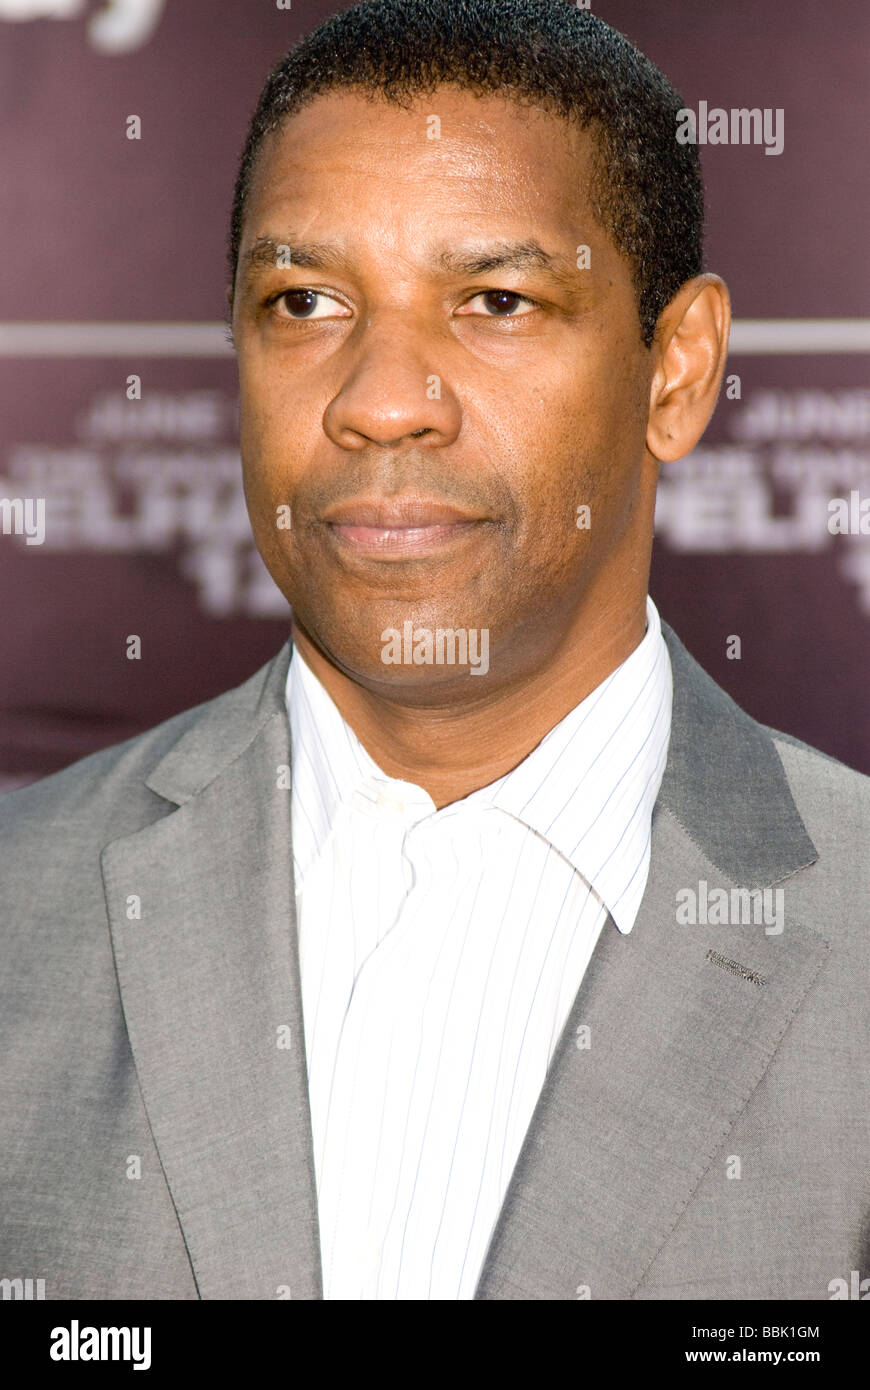 """LOS ANGELES - JUNE 4: Denzel Washington arrives at the premiere of his new film, """"Taking of Pelham 123"""" on June Stock Photo"""